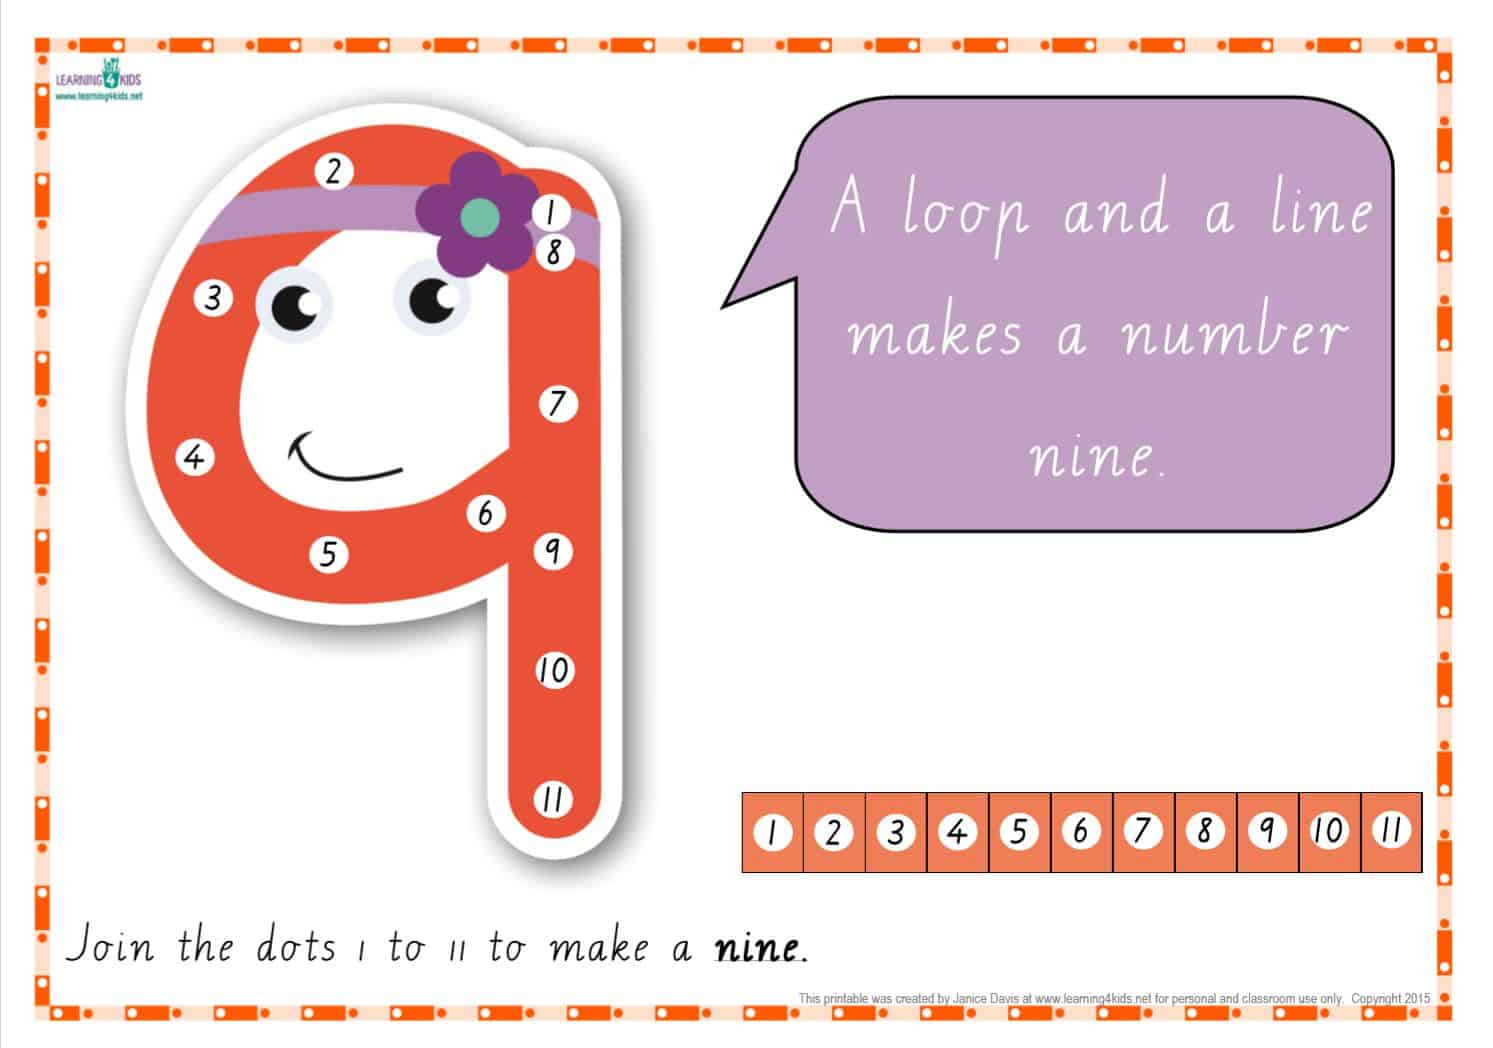 photograph about Printable Numbers 0-9 named Dot-towards-Dot Selection Rhyme Charts (Cursive Print)